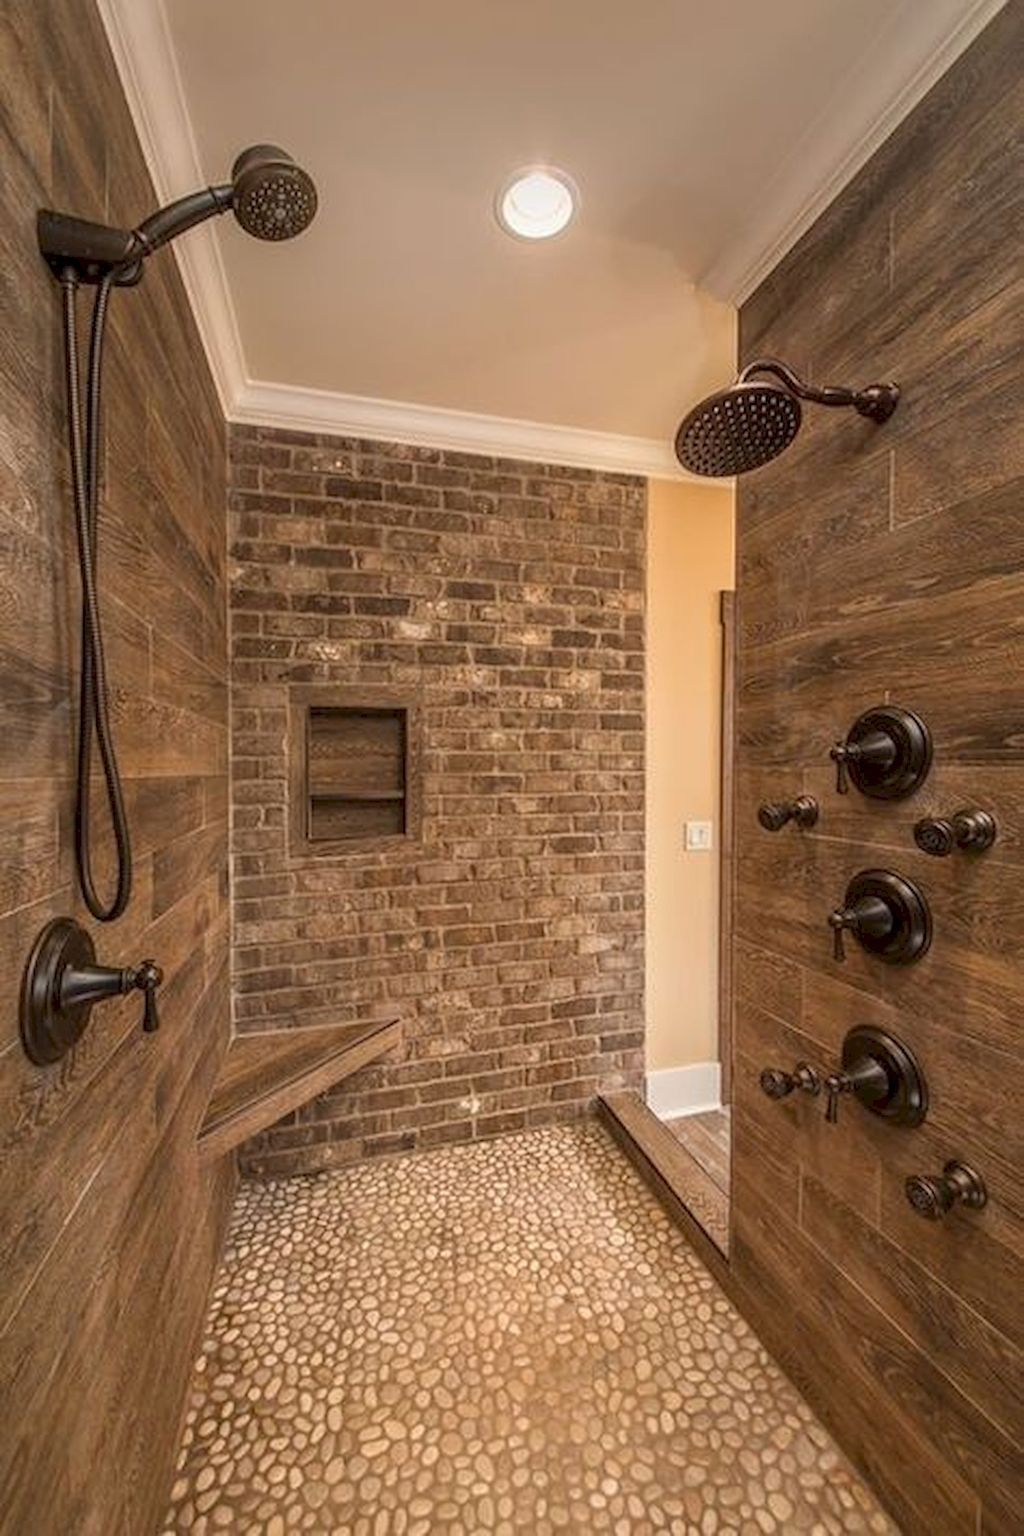 Adorable 80 Best Farmhouse Tile Shower Ideas Remodel Https Roomadness Com 2018 01 30 80 Craftsman Bathroom Bathroom Remodel Master Farmhouse Master Bathroom